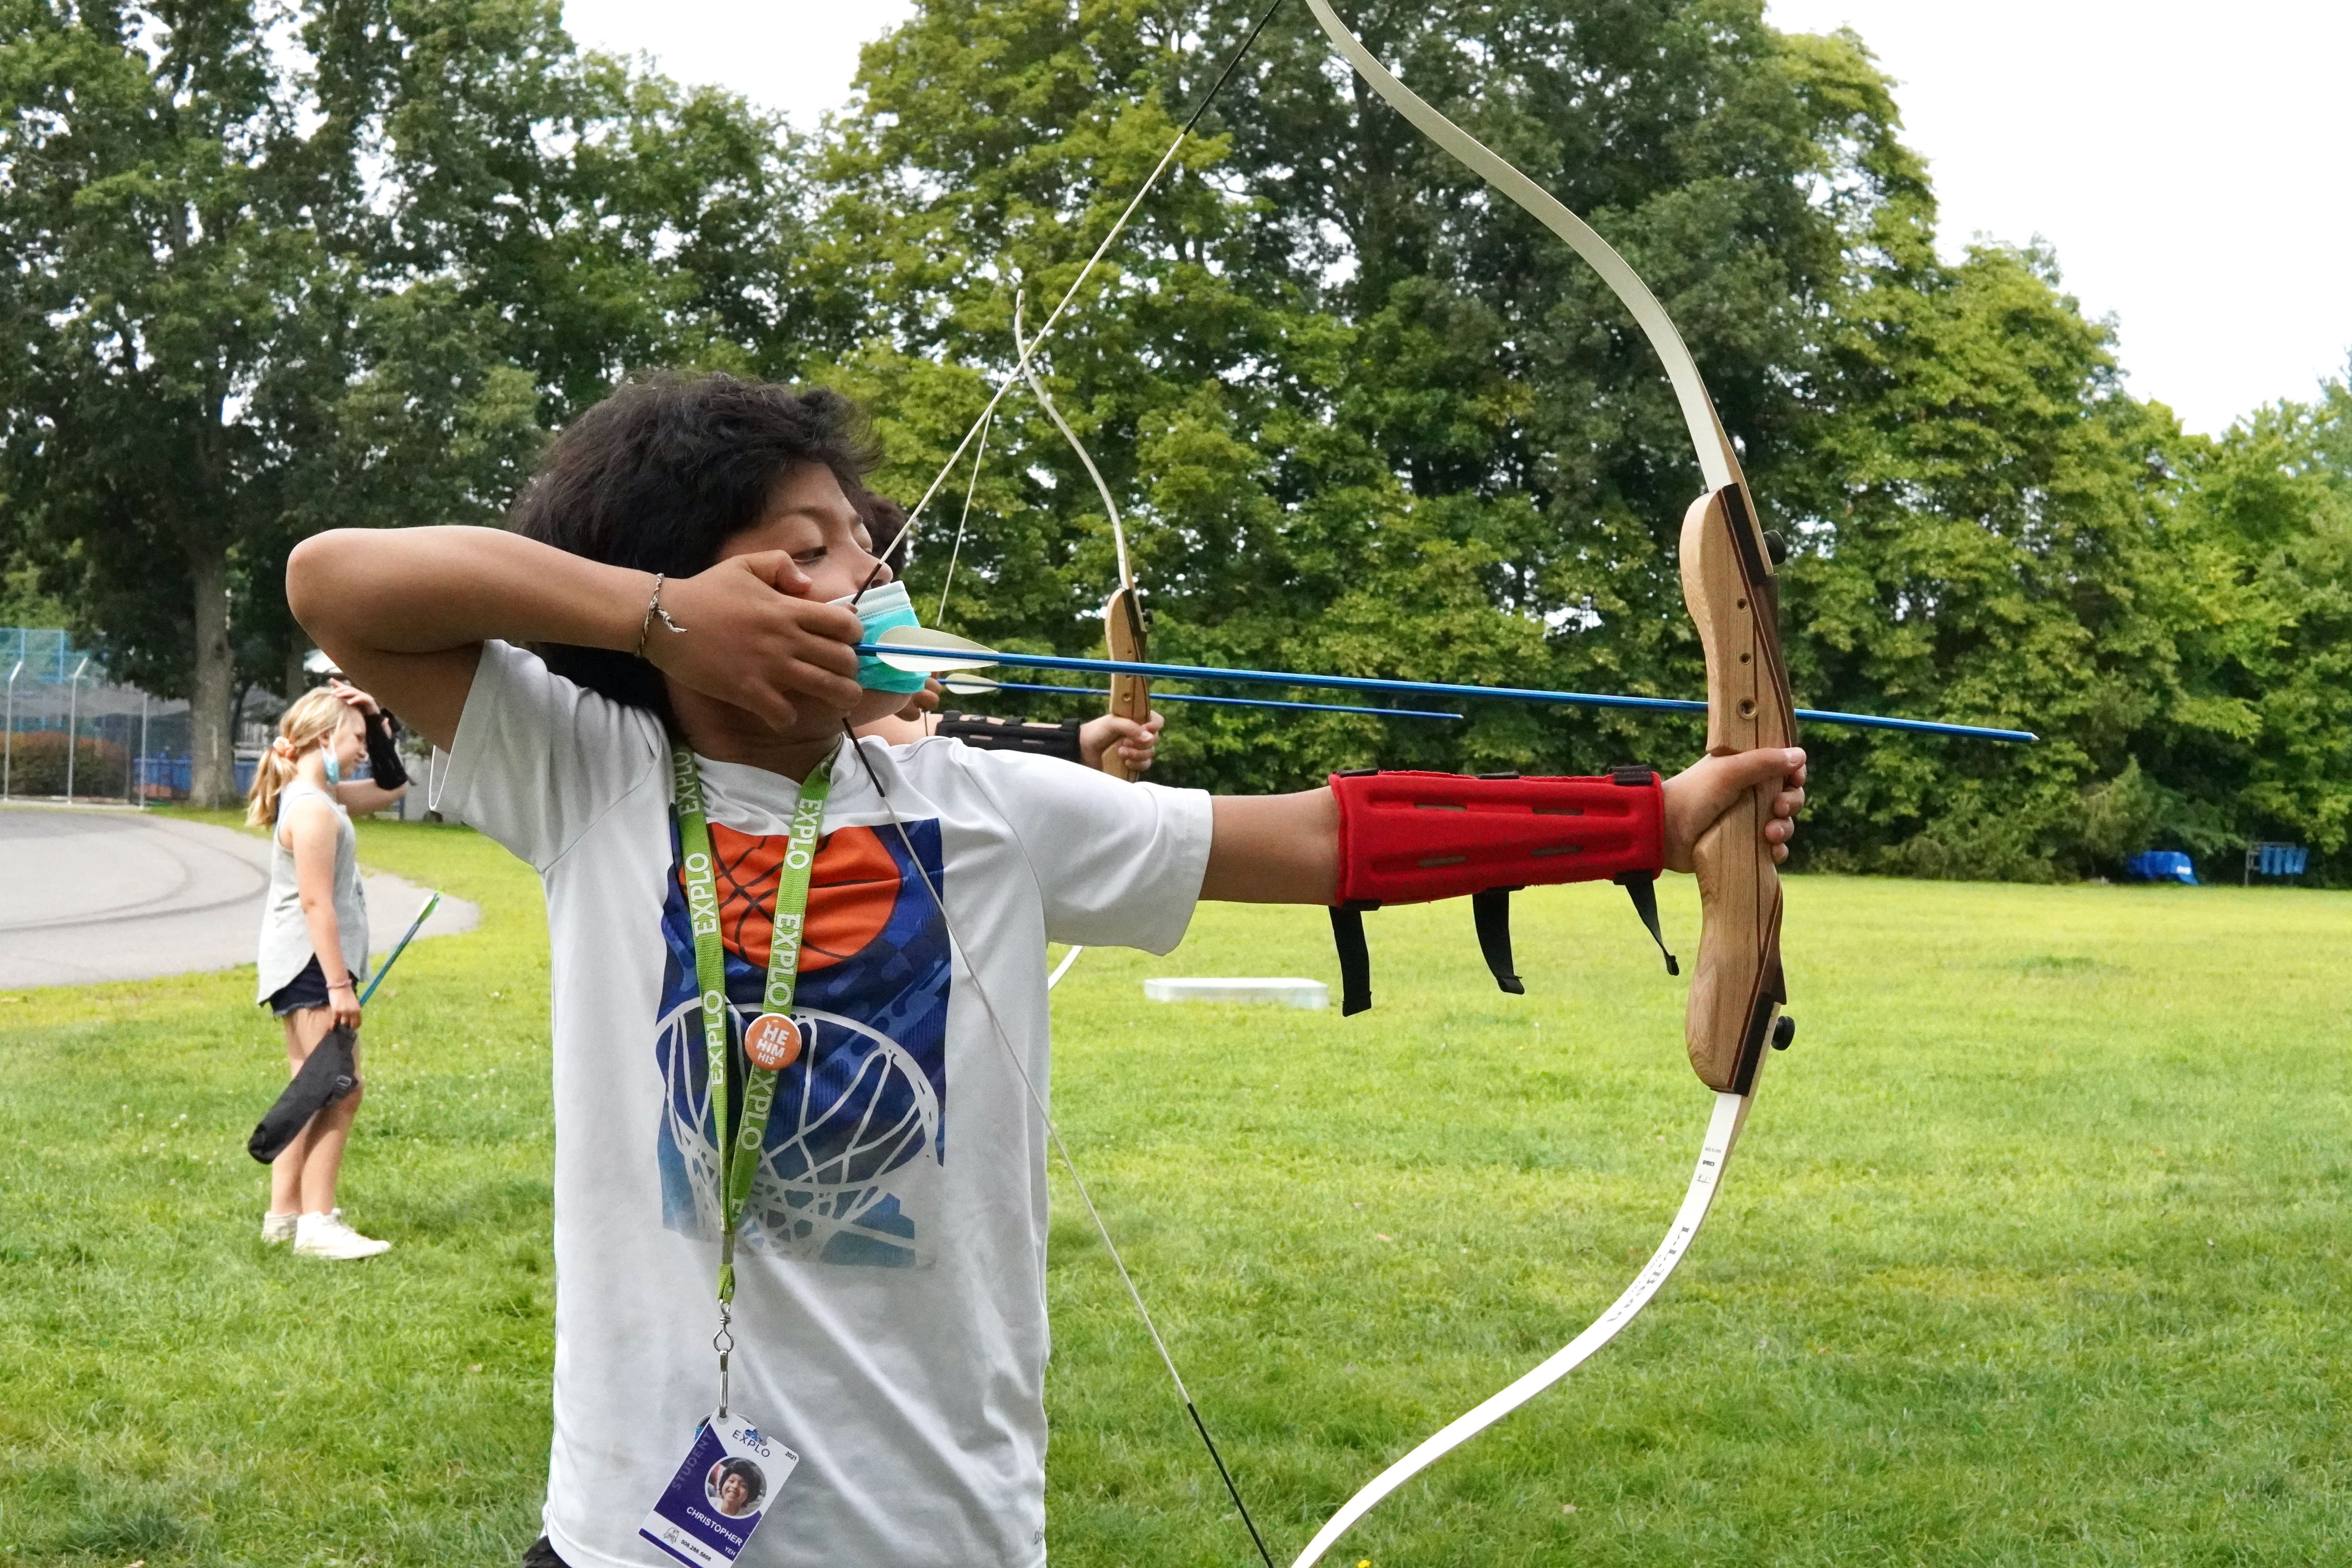 A student taking aim with a bow and arrow